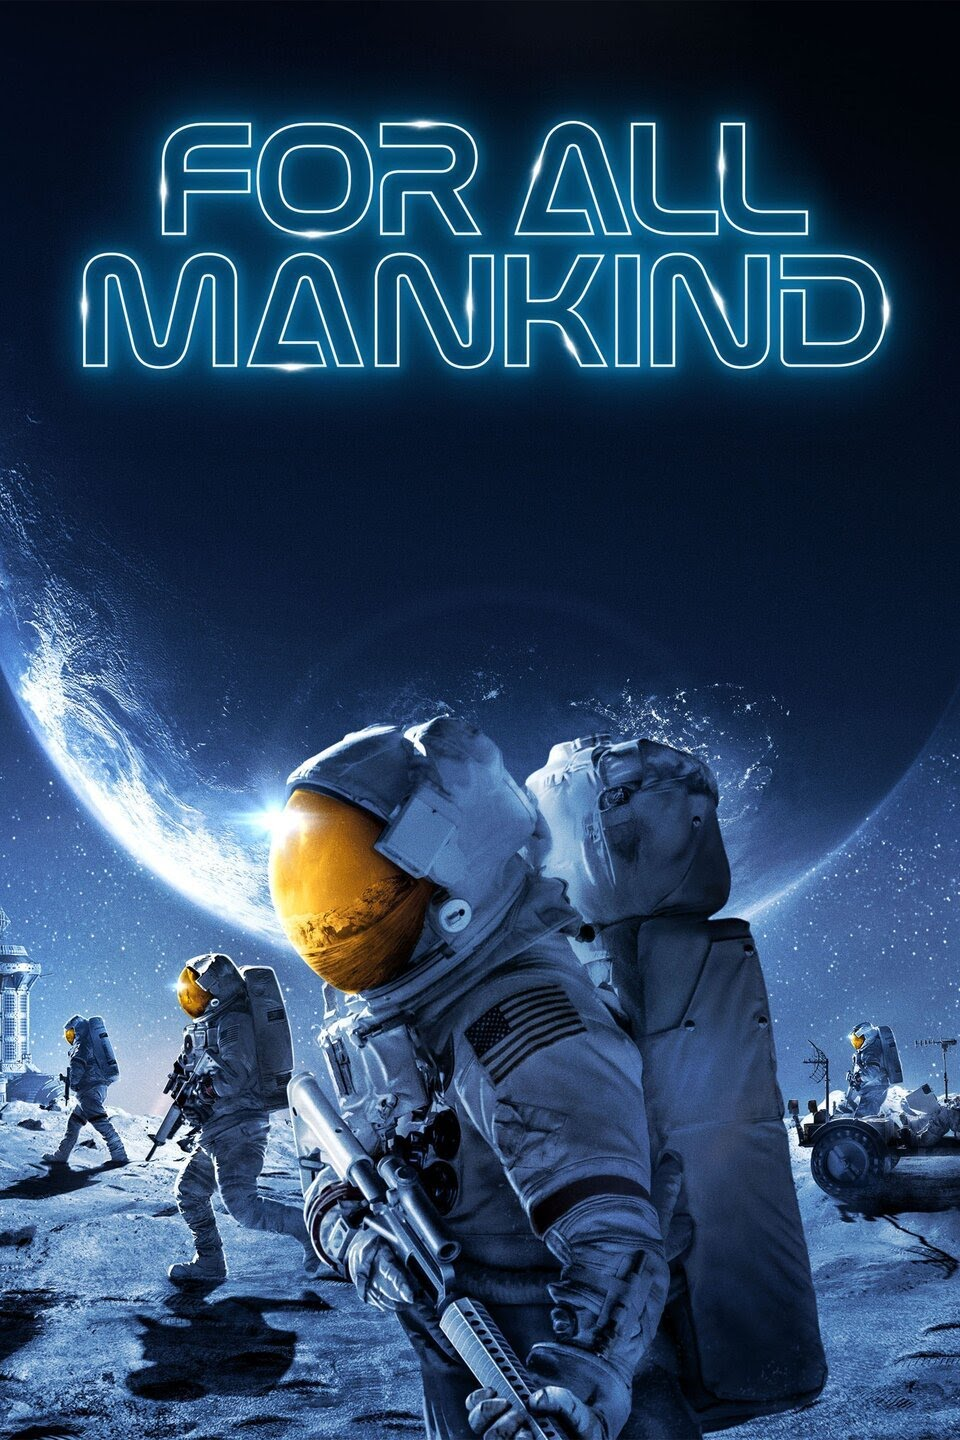 DOWNLOAD For All Mankind Season 2 Episode 4 (S02E04) Mp4 HD SRT Subtitles